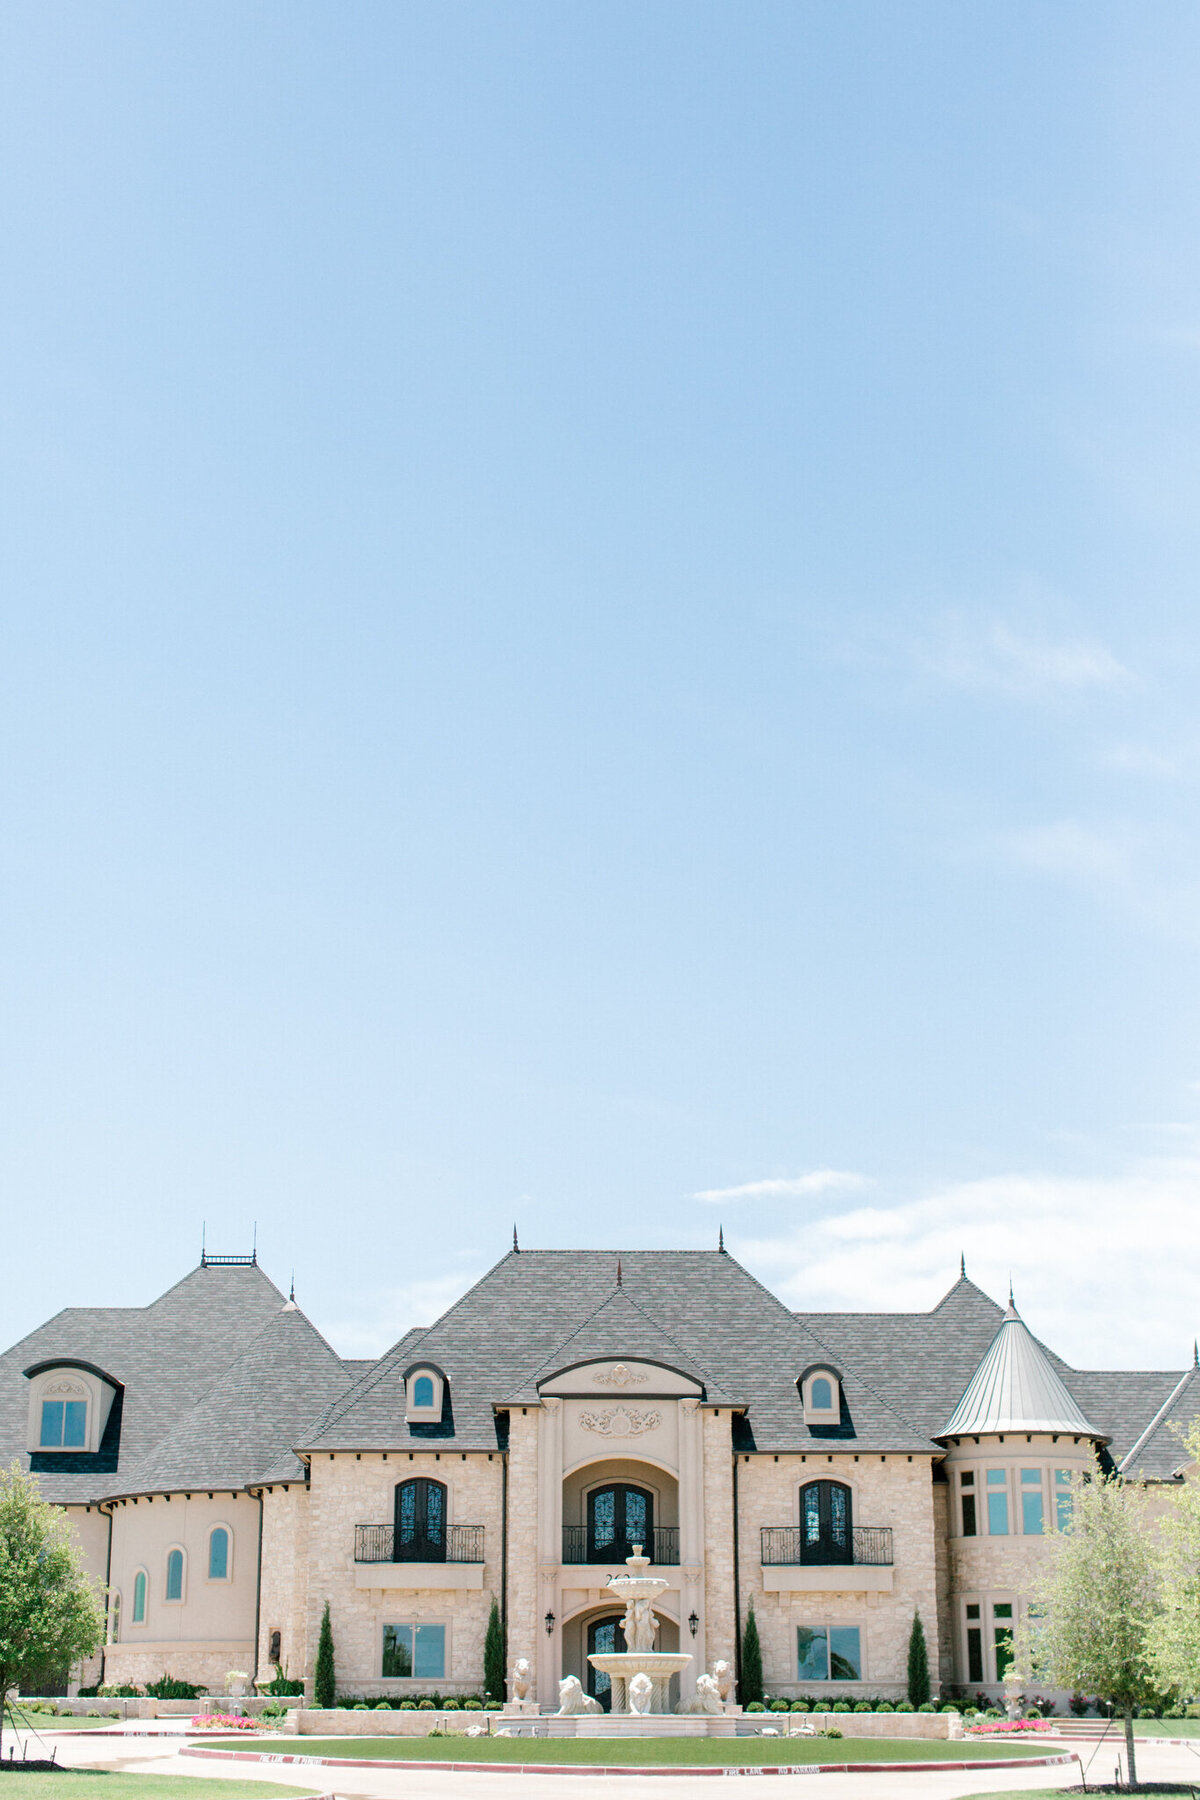 Jasmine & Josh Wedding at Knotting Hill Place | Dallas DFW Wedding Photographer | Sami Kathryn Photography-2